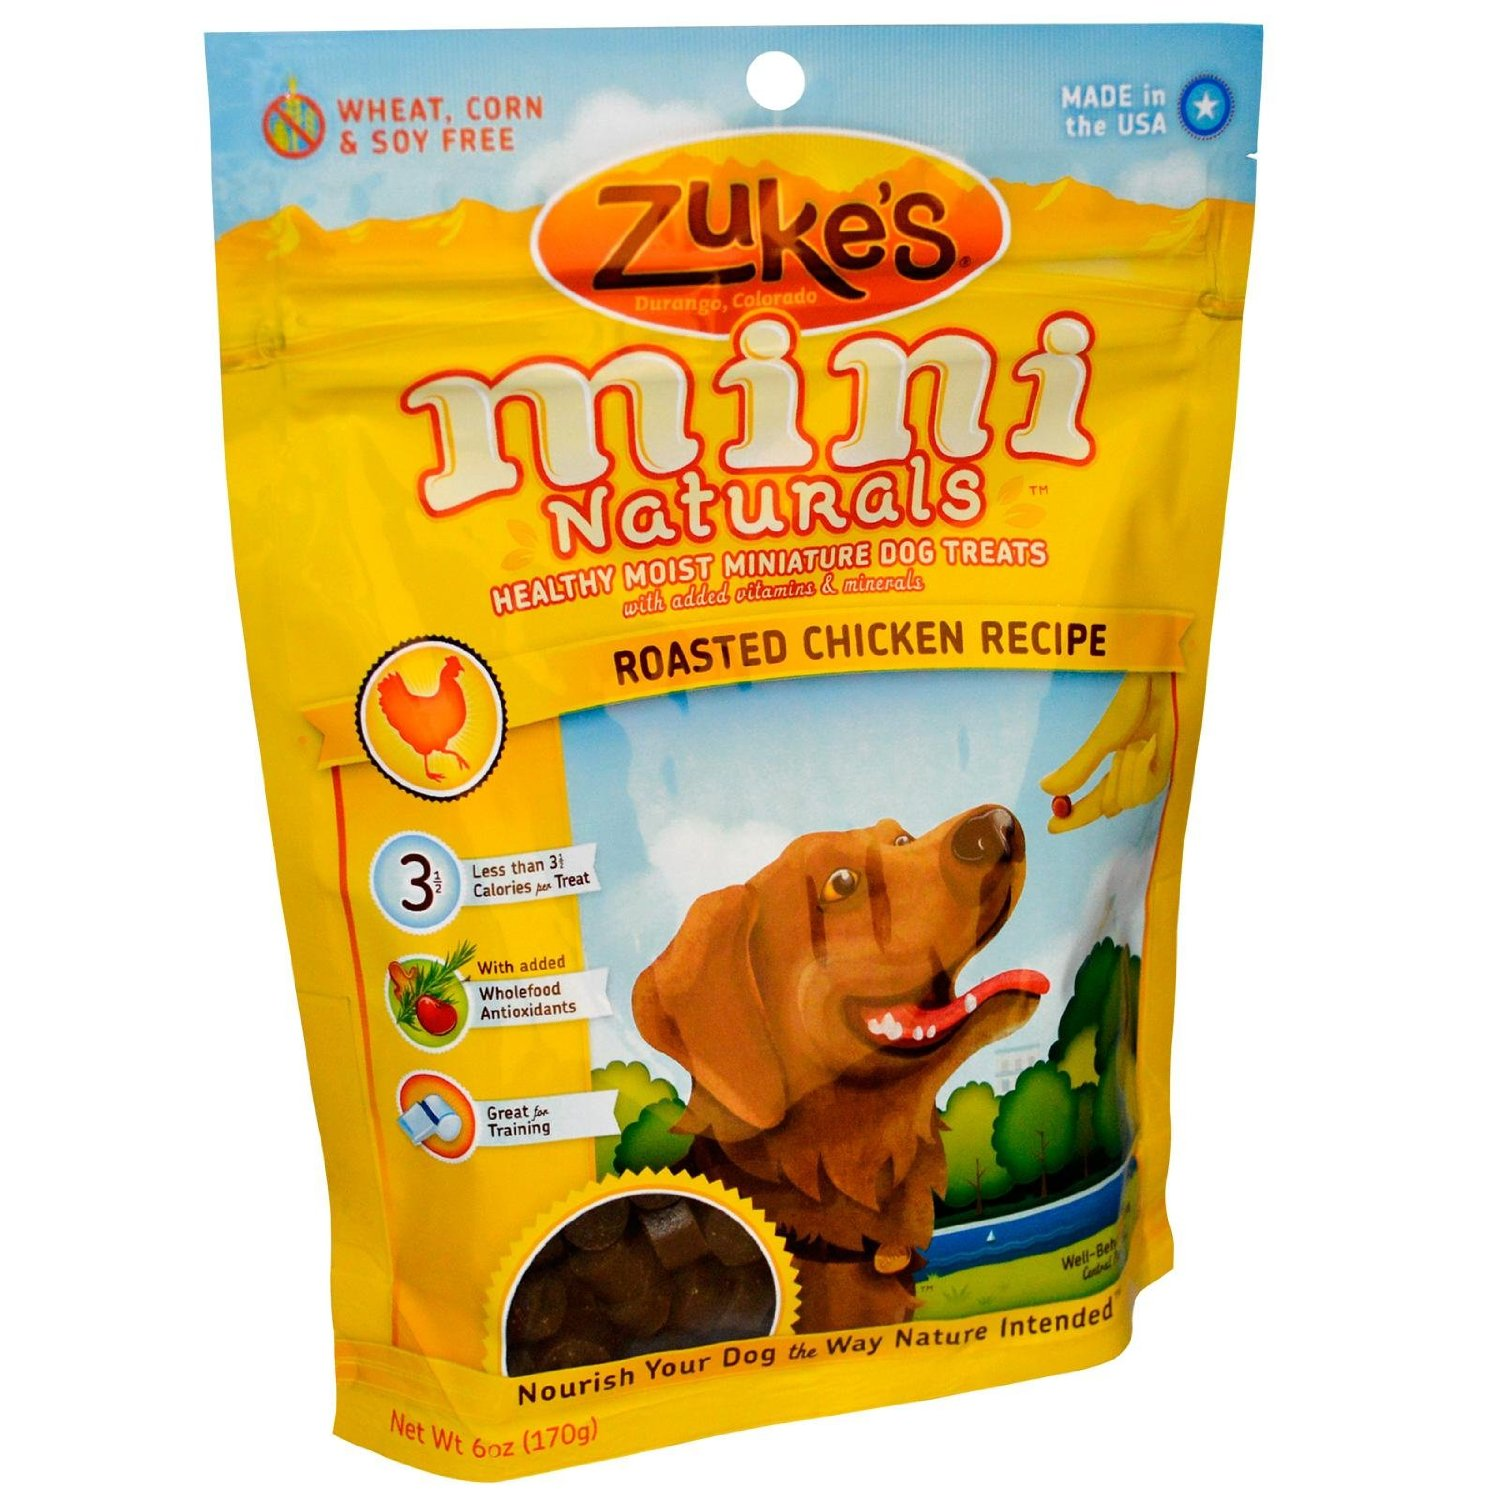 Mini Naturals Moist Miniature Treat for Dogs Roasted Chicken 6oz. 33051